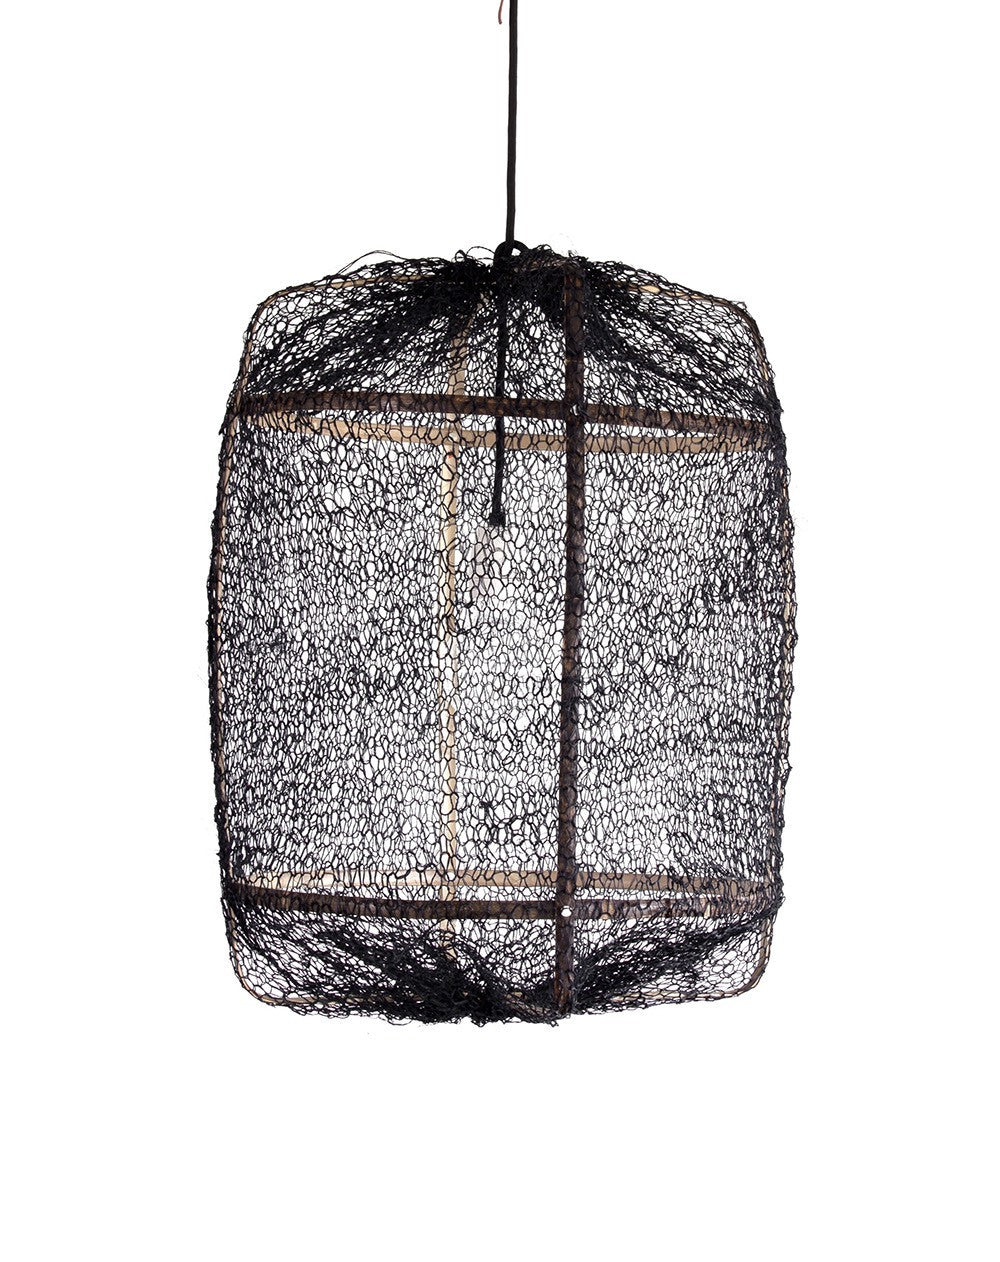 AY Illuminate - Z5 Black Sisal Net and bamboo Light  cover